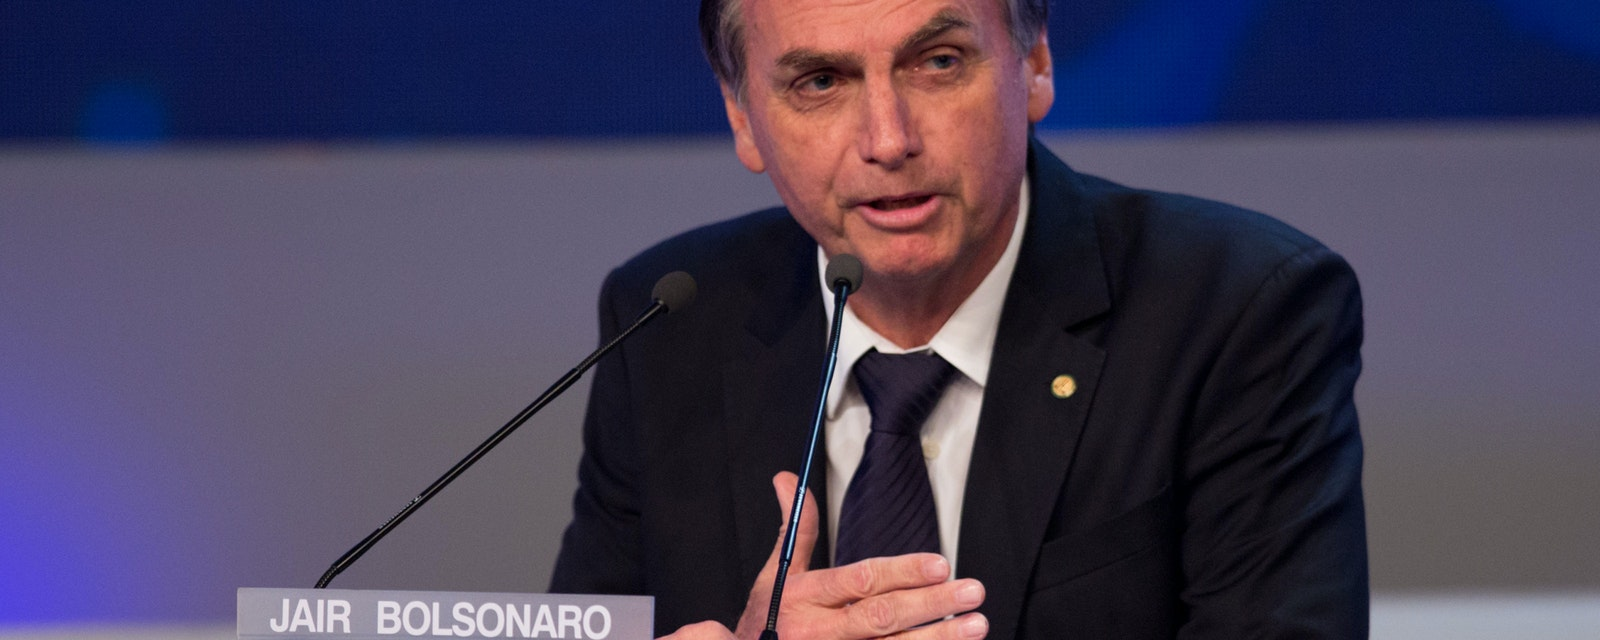 Portrait of Jair Bolsonaro